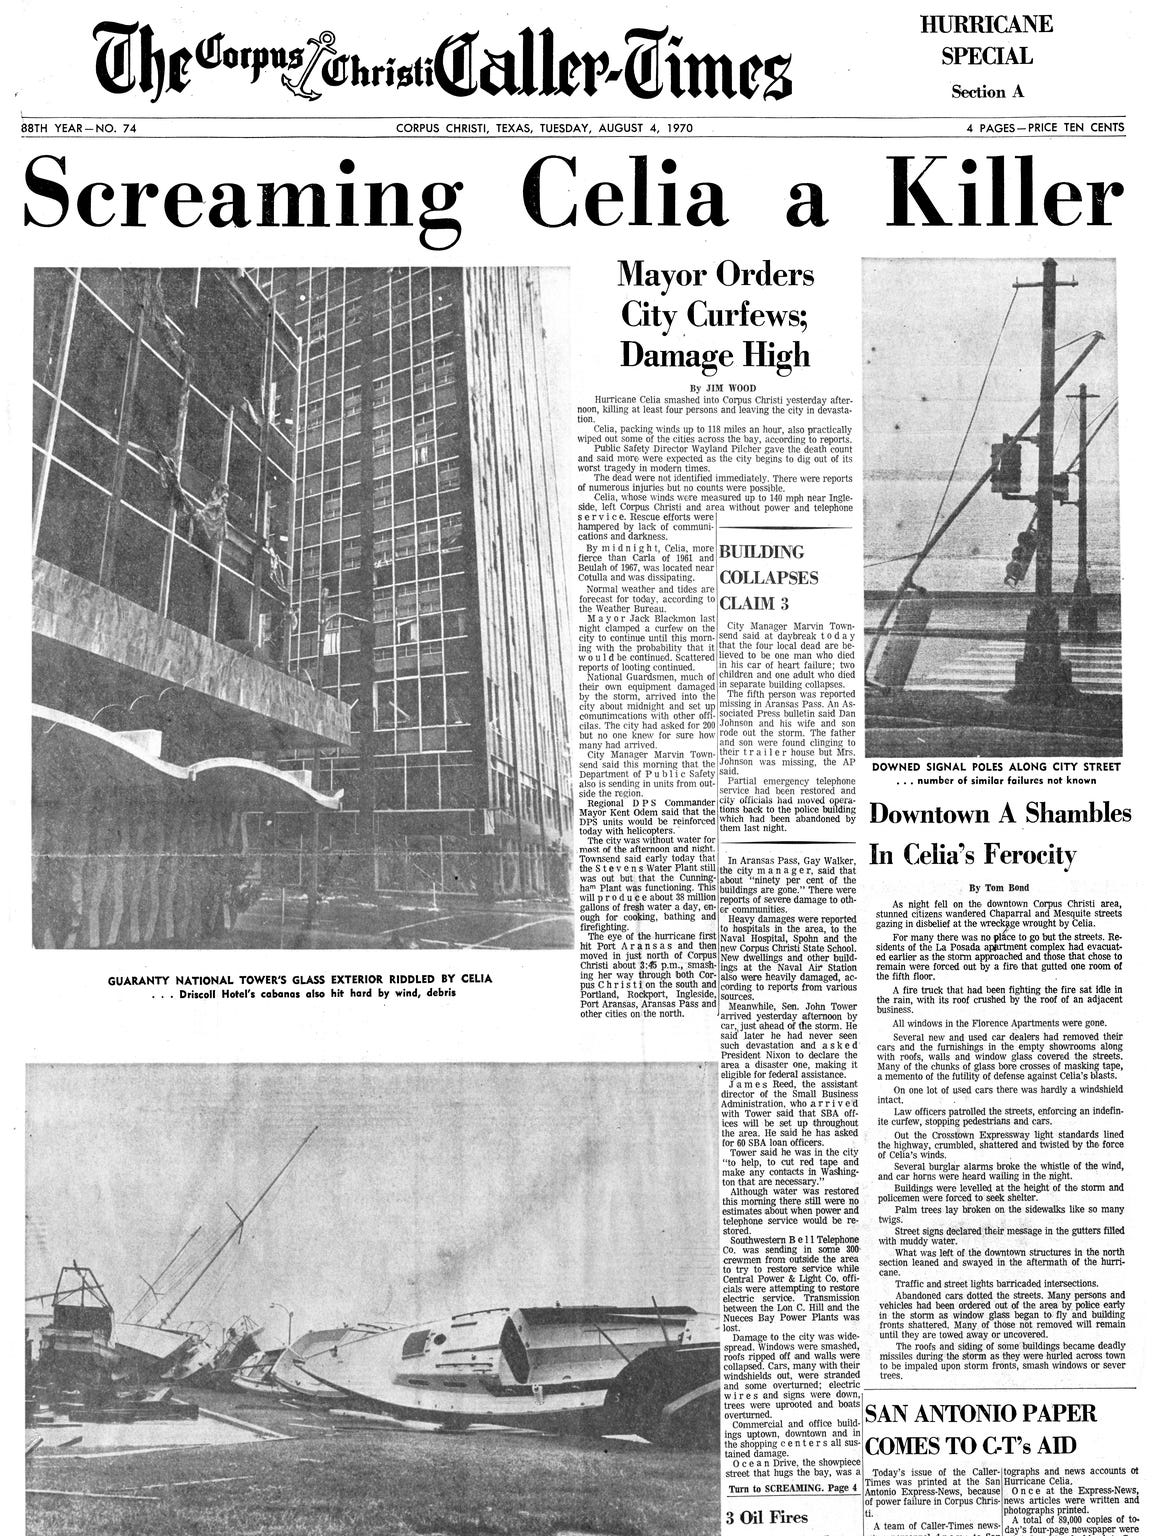 The front page of the Caller-Times carried news of